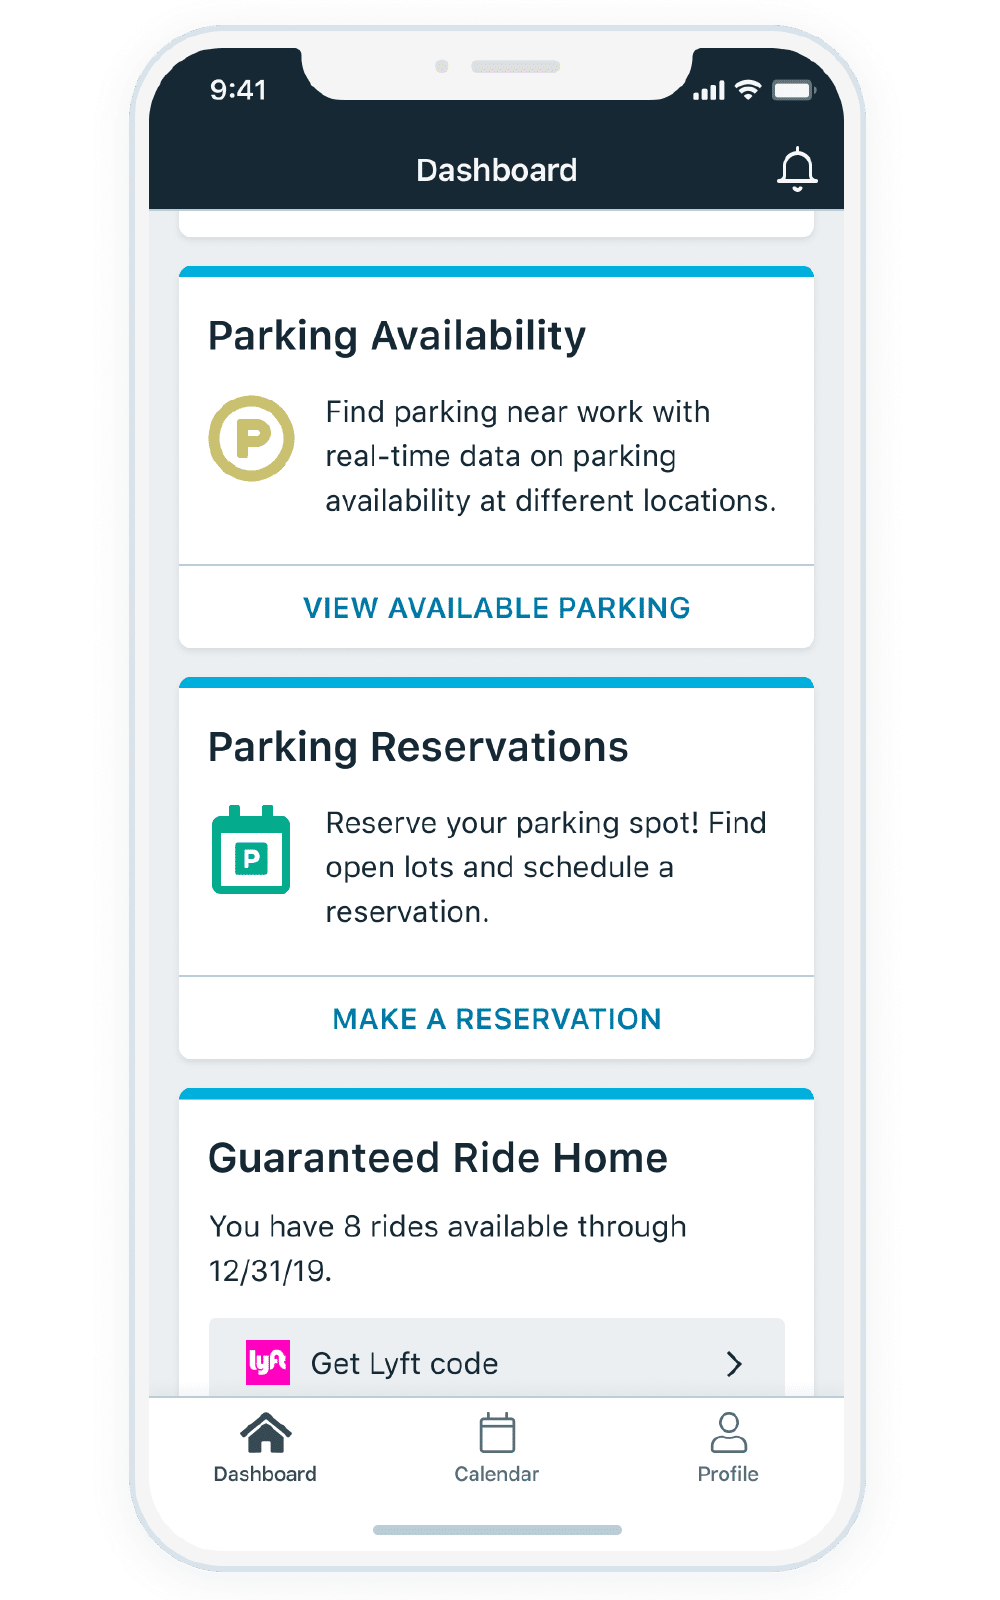 Parking Availability and Reservations